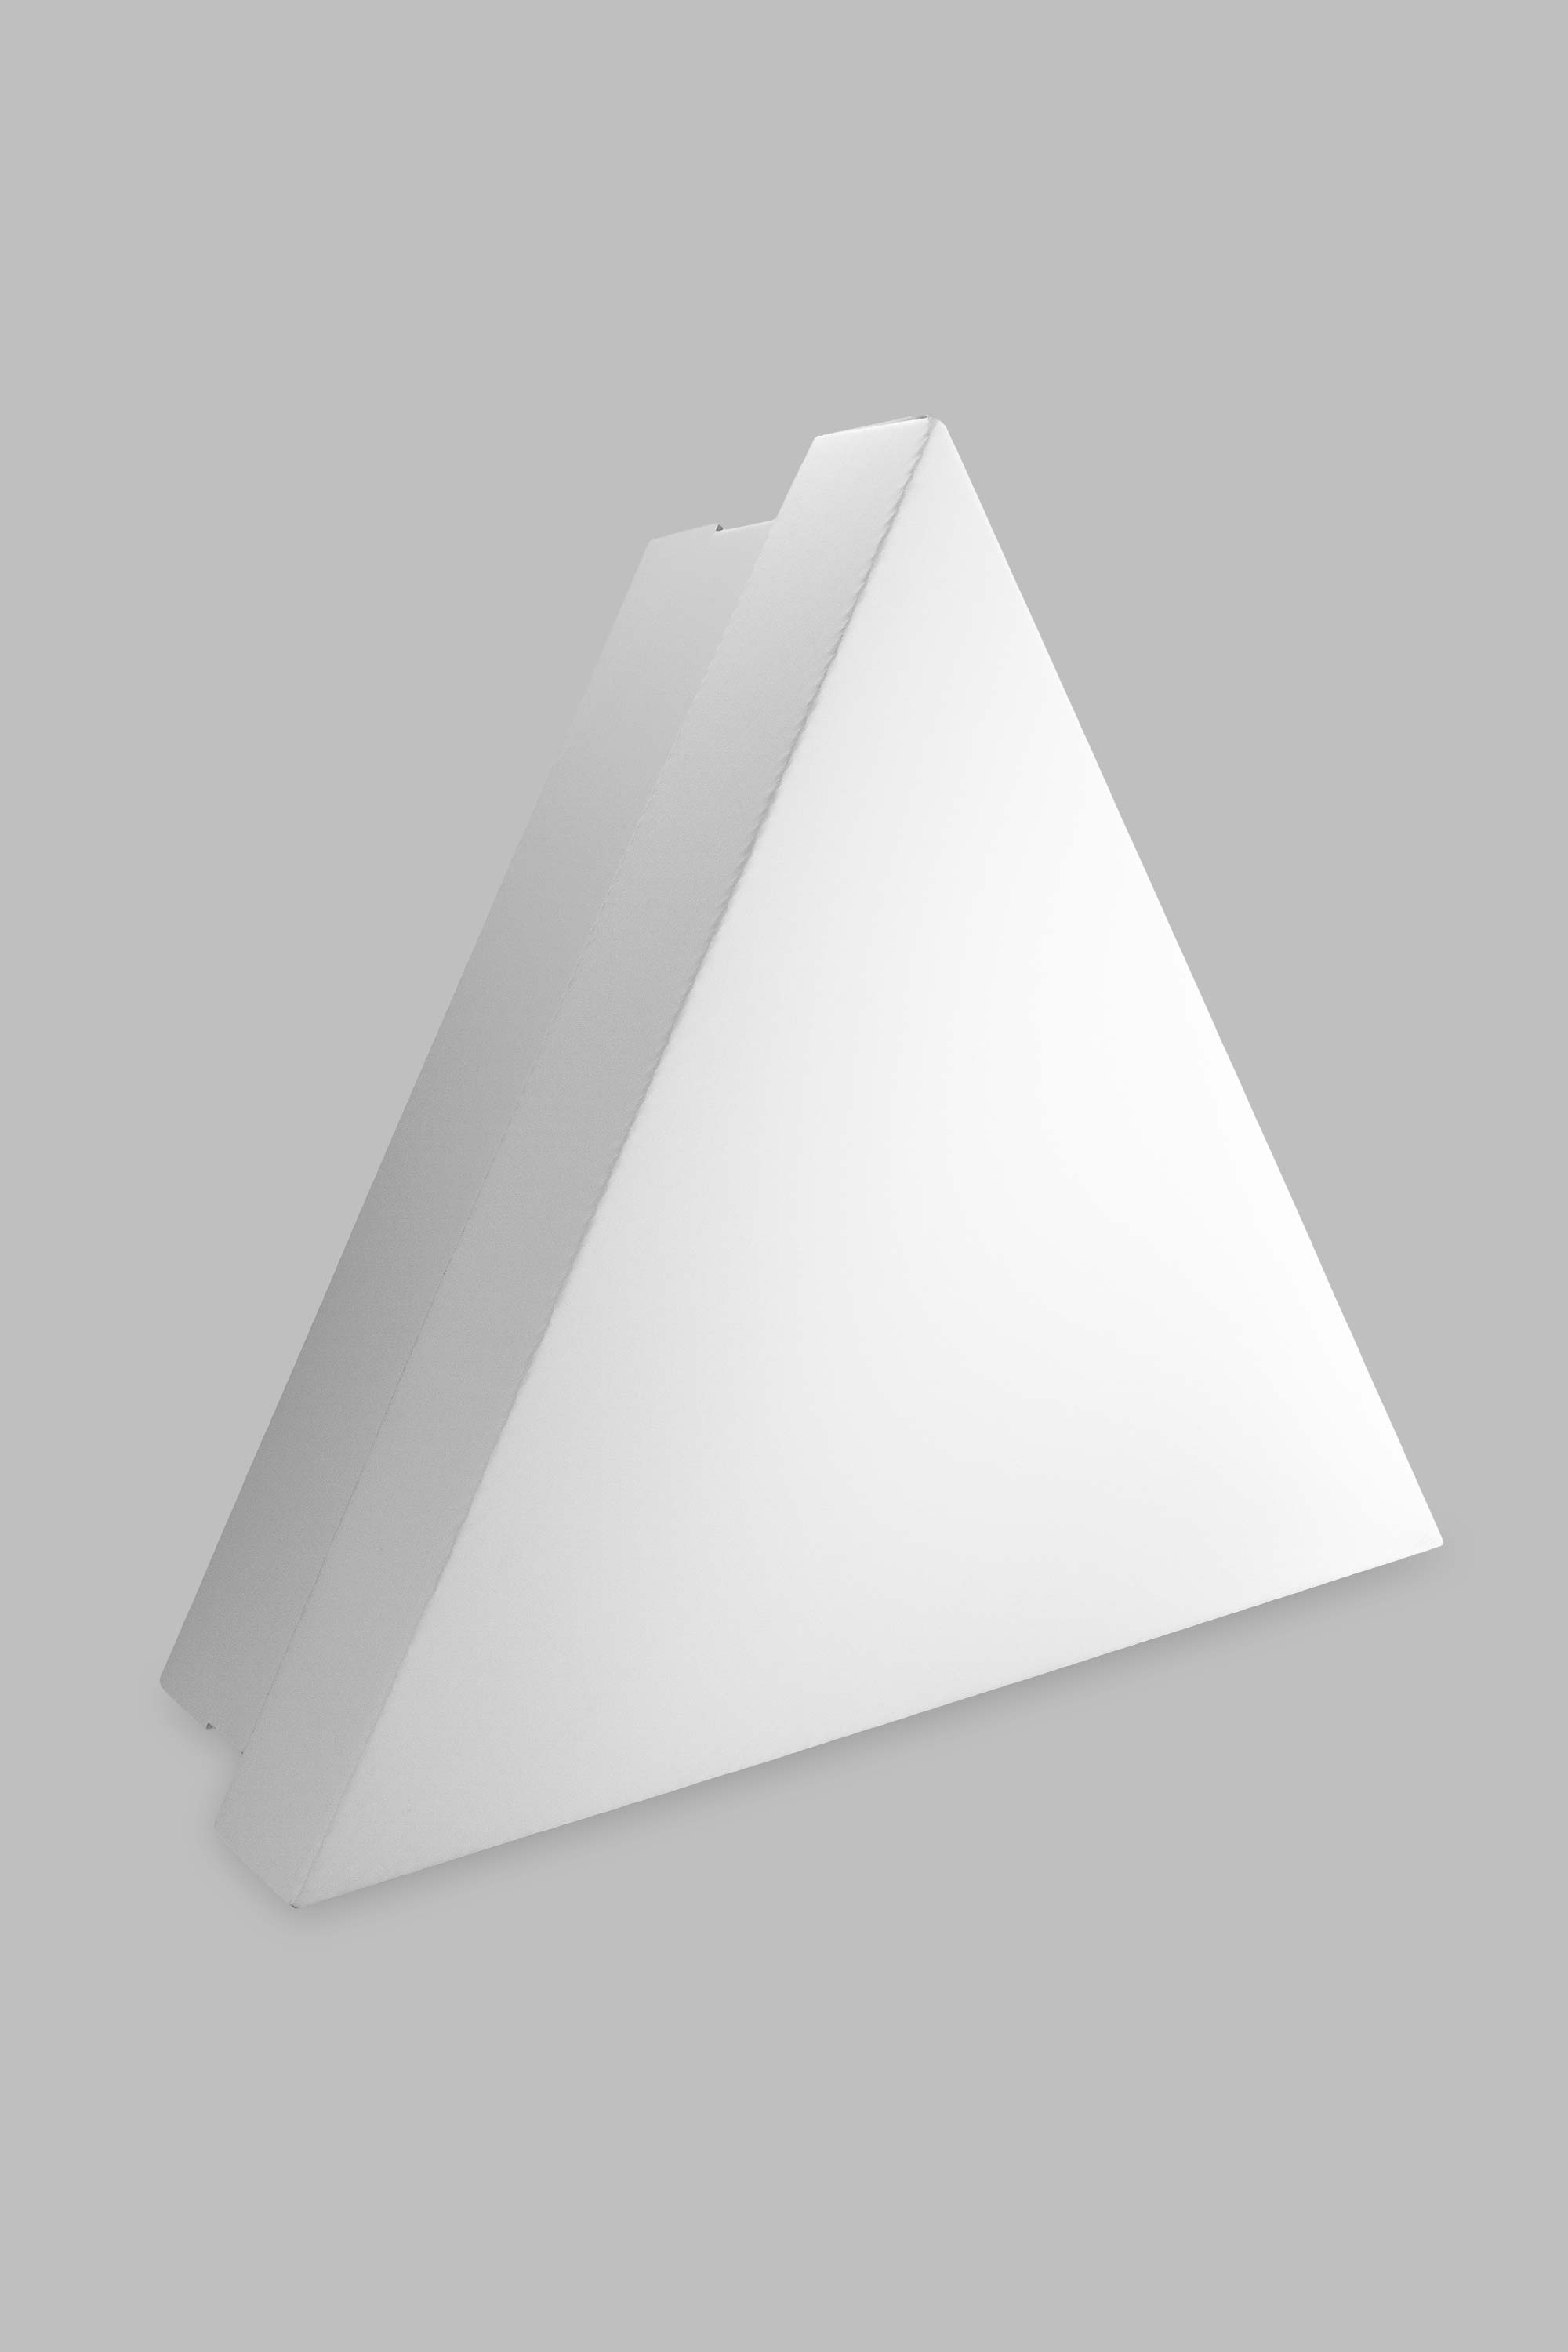 Triangle-Box-Structural-Design-Packaging-Prototype-Design.jpg